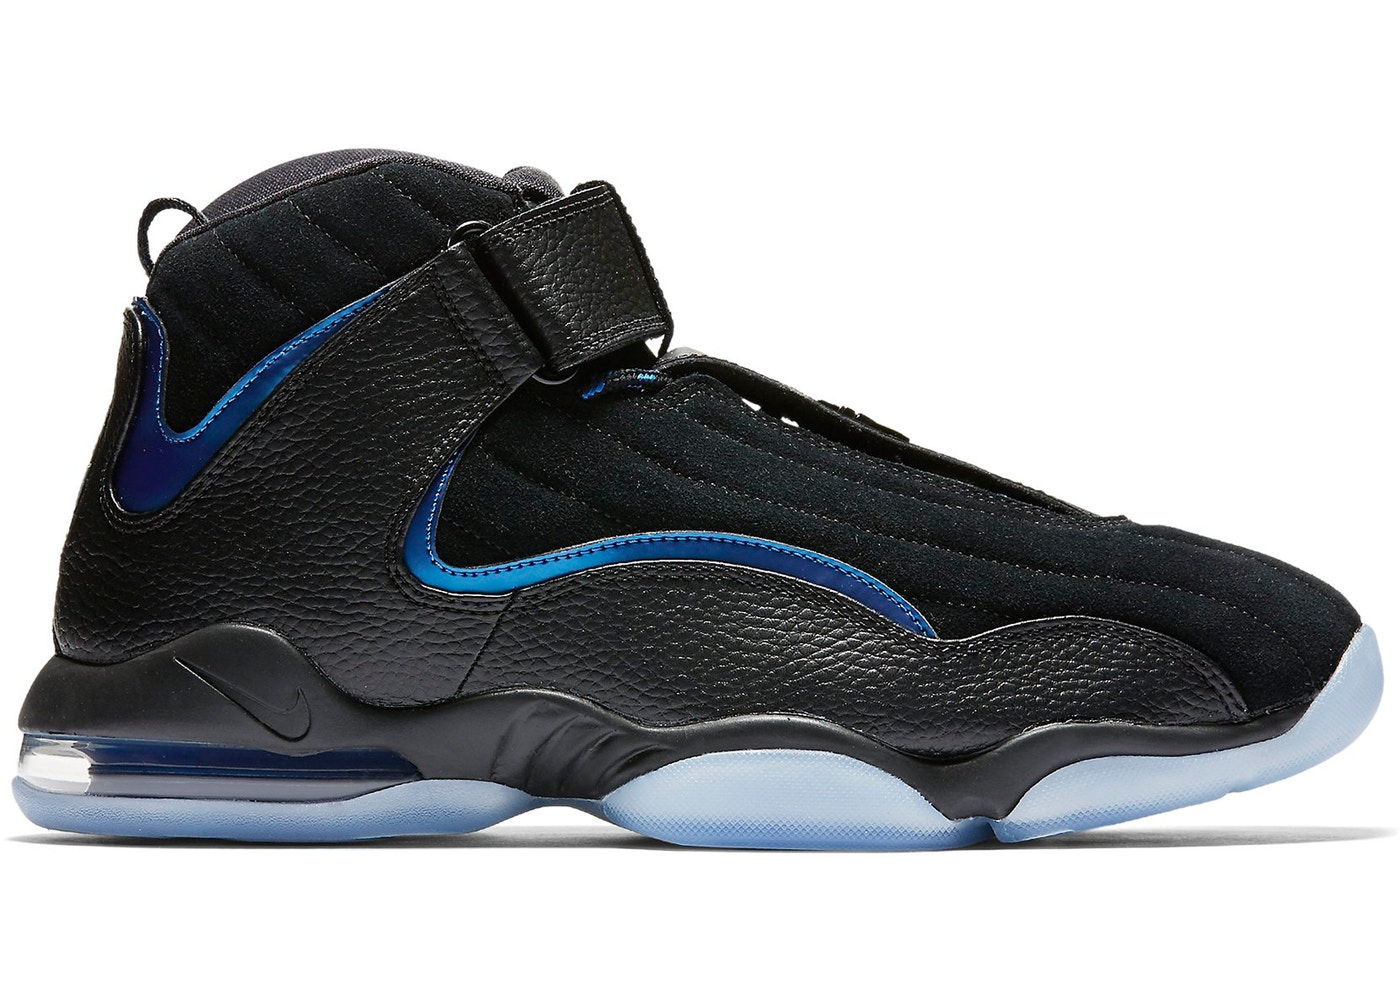 check out 8cbb7 f4e26 Nike Basketball Penny Shoes - Release Date